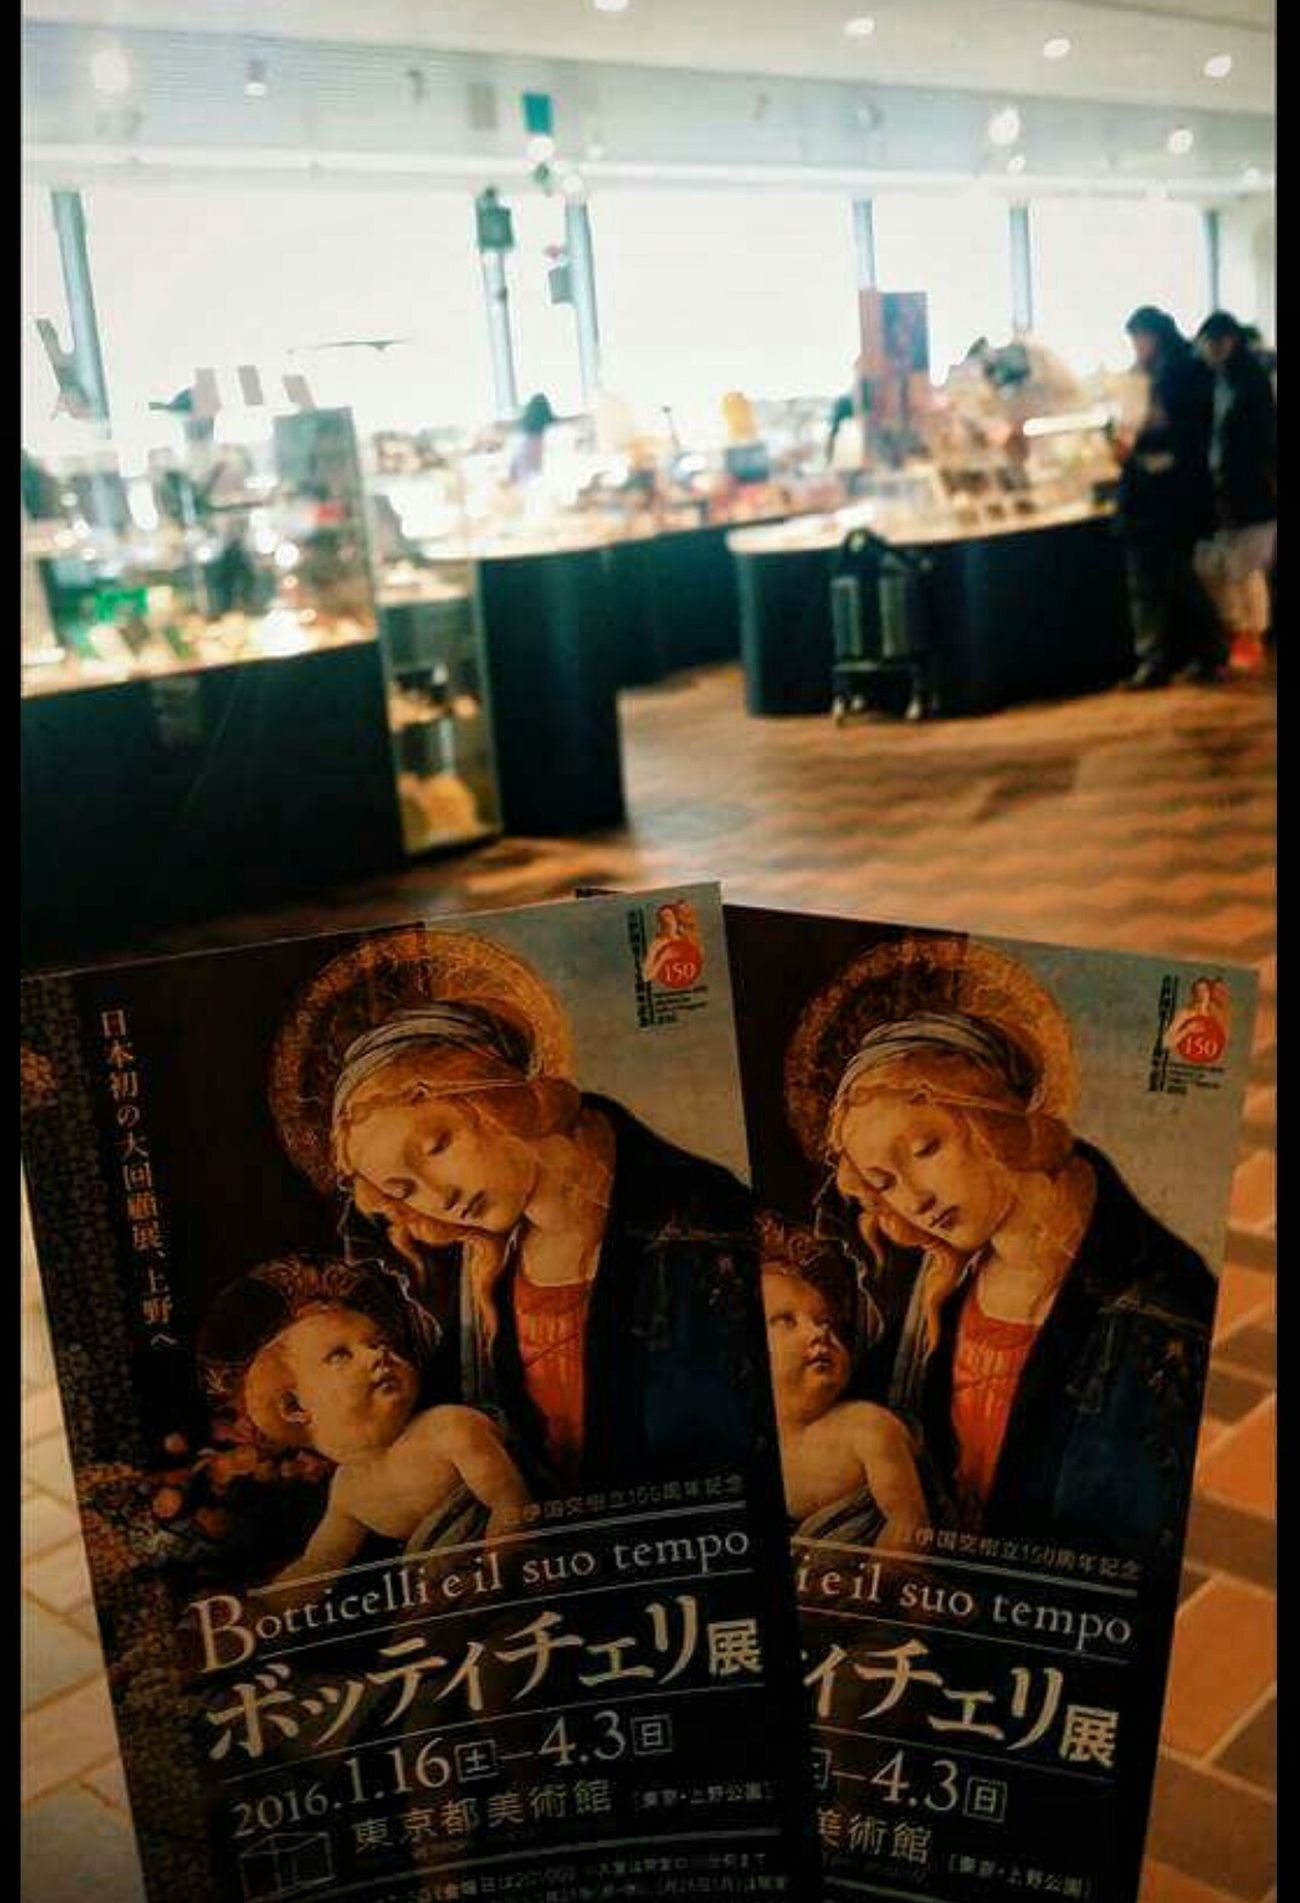 Tickets Tokyometropolitanartmeseum Sandro Botticelli 1445-1510 Art Exhibition Madonna Of The Books 1480-3 Early Renaissance Florentine Tokyo Japan Tokyospring2016 Tokyouenospring2016 Uenopark Uenopark2016